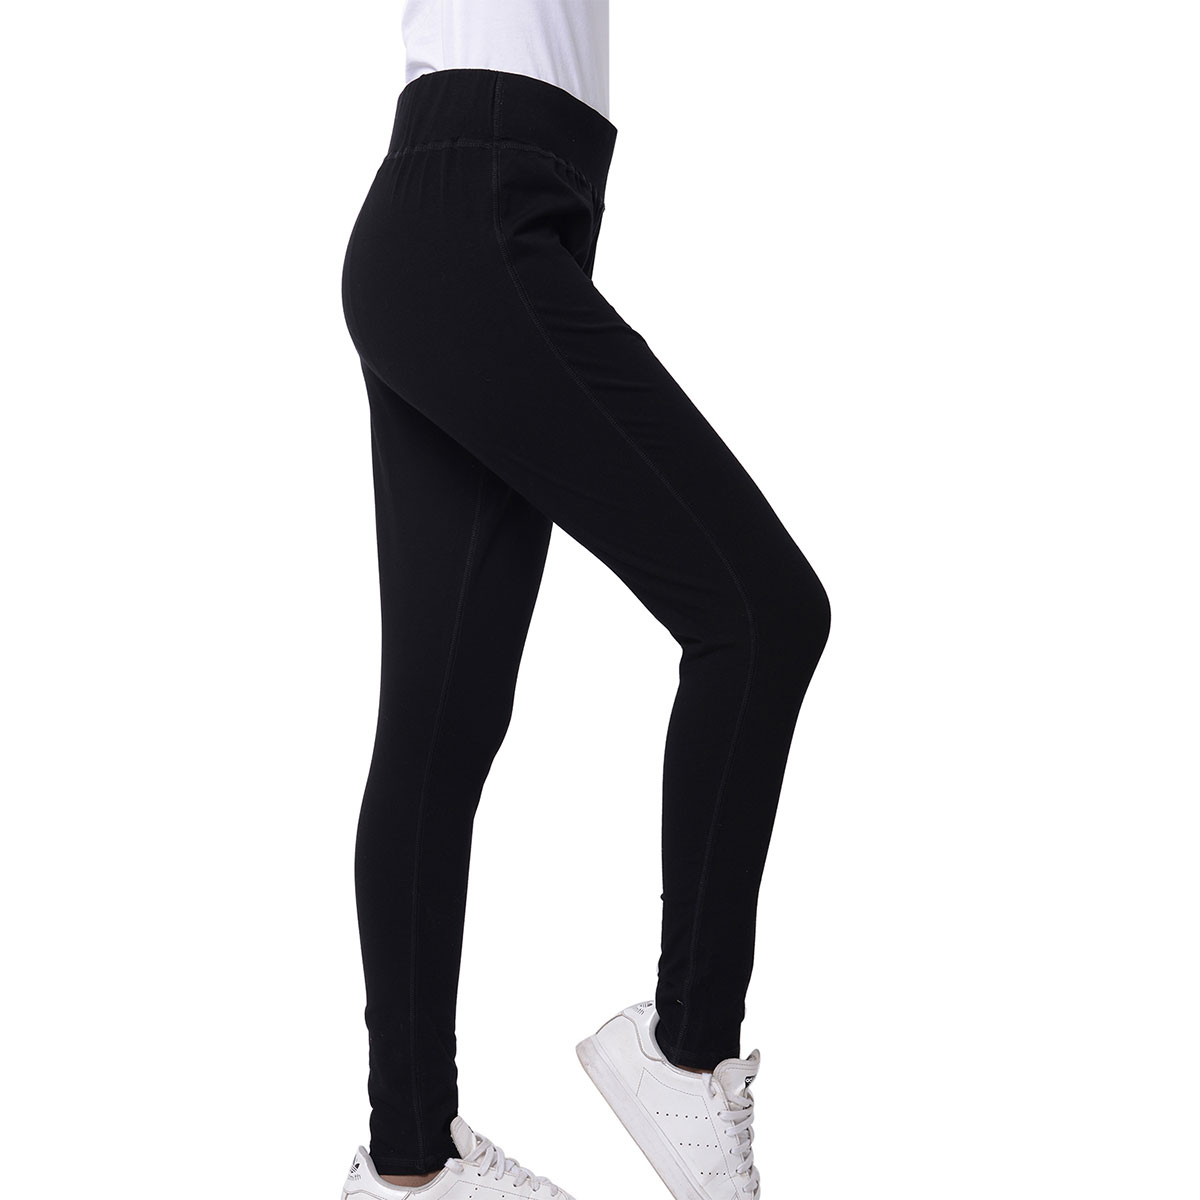 5776cb30e4e Marigold & Lotus Black High Waist Elastic Legging Pants - XL (100% Viscose)